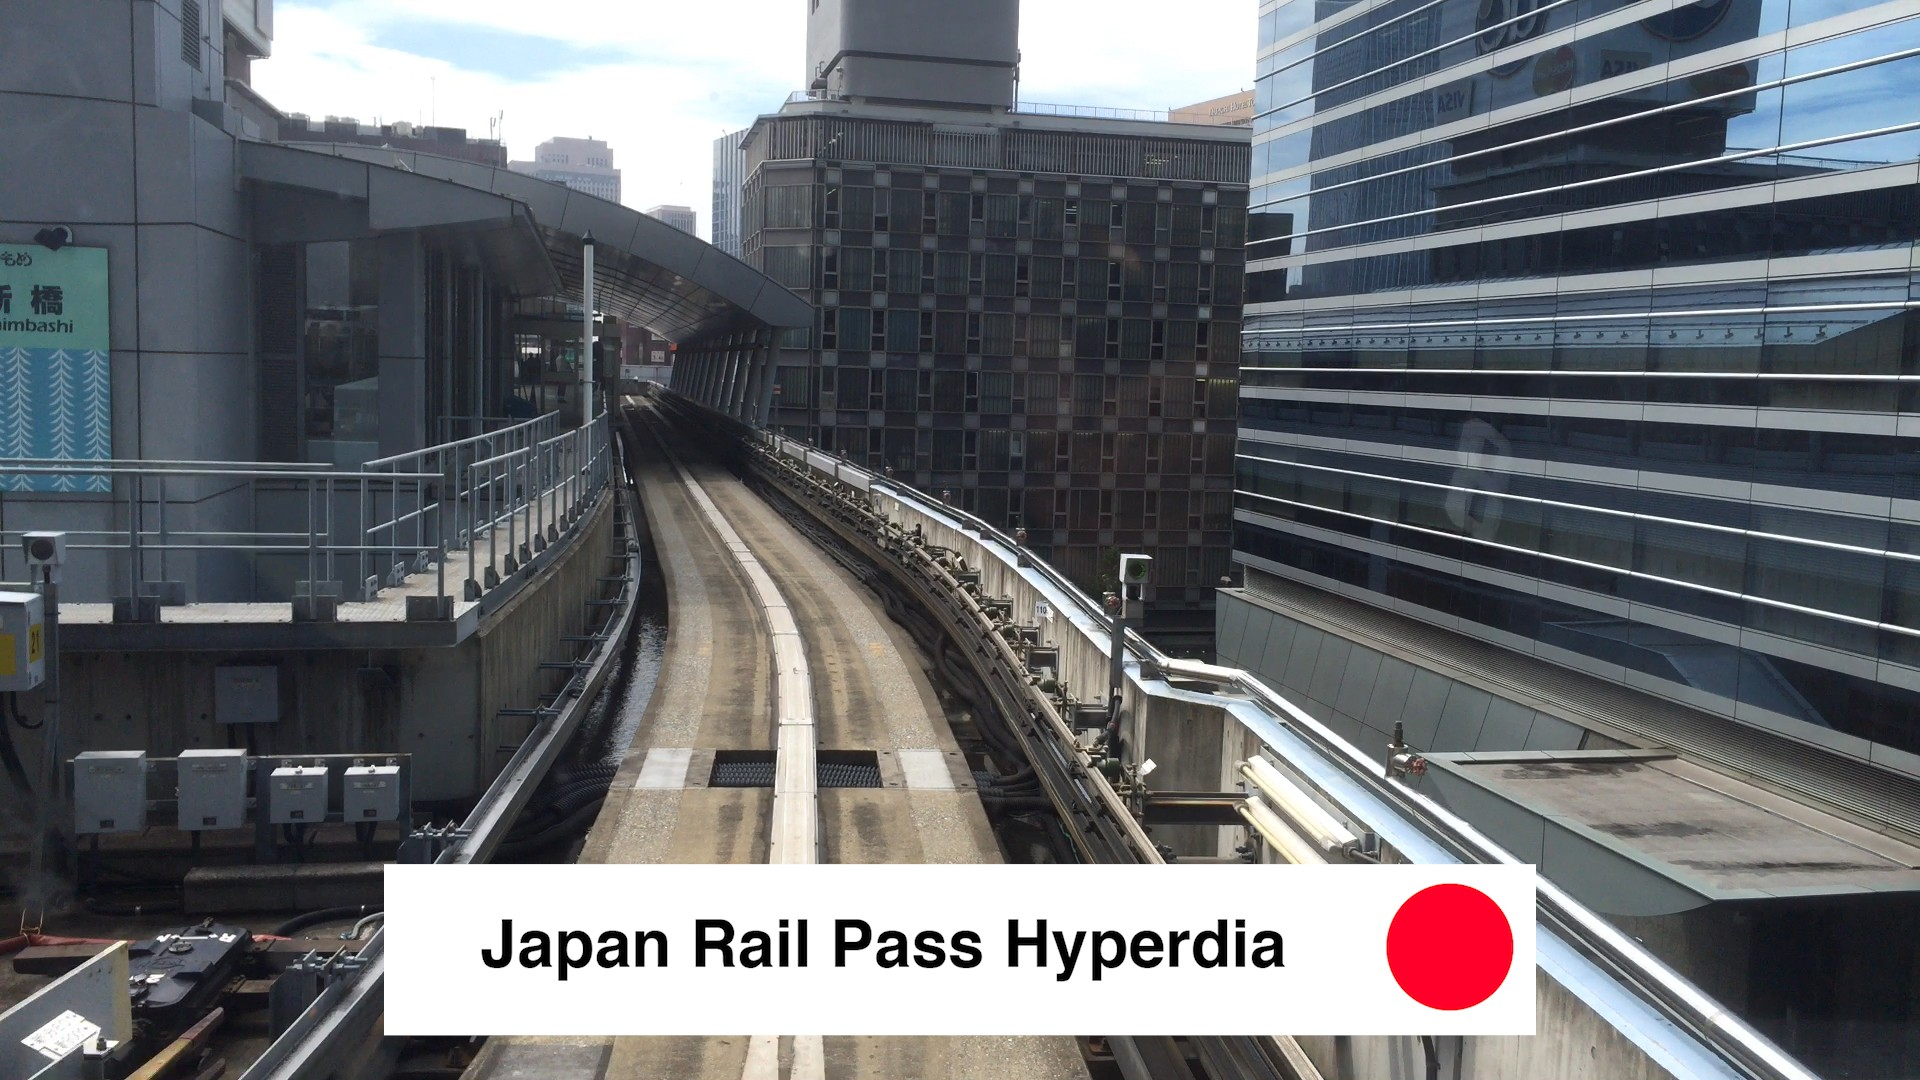 Japan Rail Hyperdia - Where To Buy Japan Rail Pass How To Use JR Pass In Tokyo. JR Pass Price